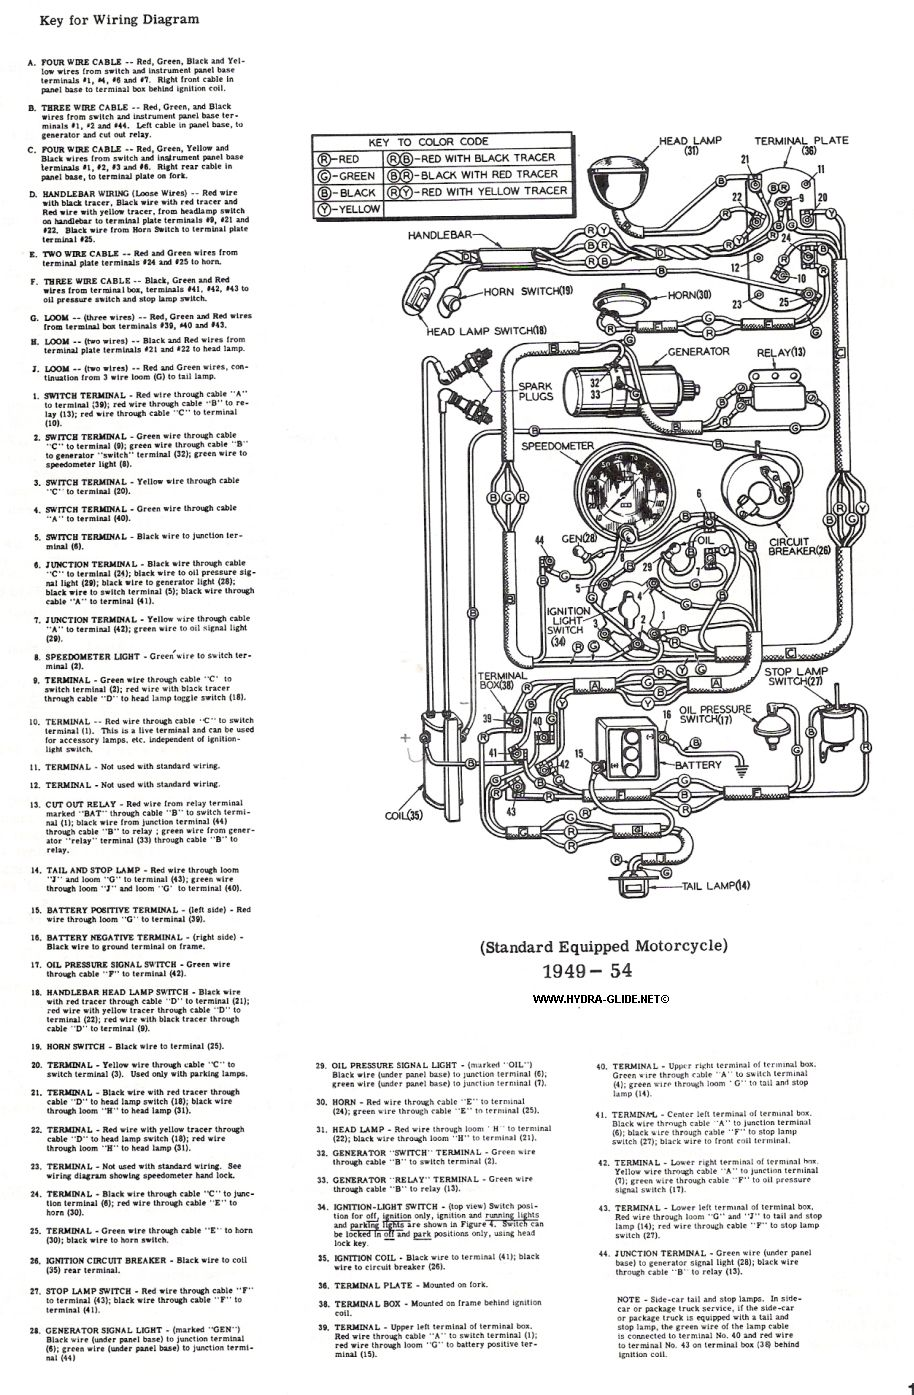 1949 - 1954 Wiring diagram Harley Davidson V Twin Wiring Diagram on